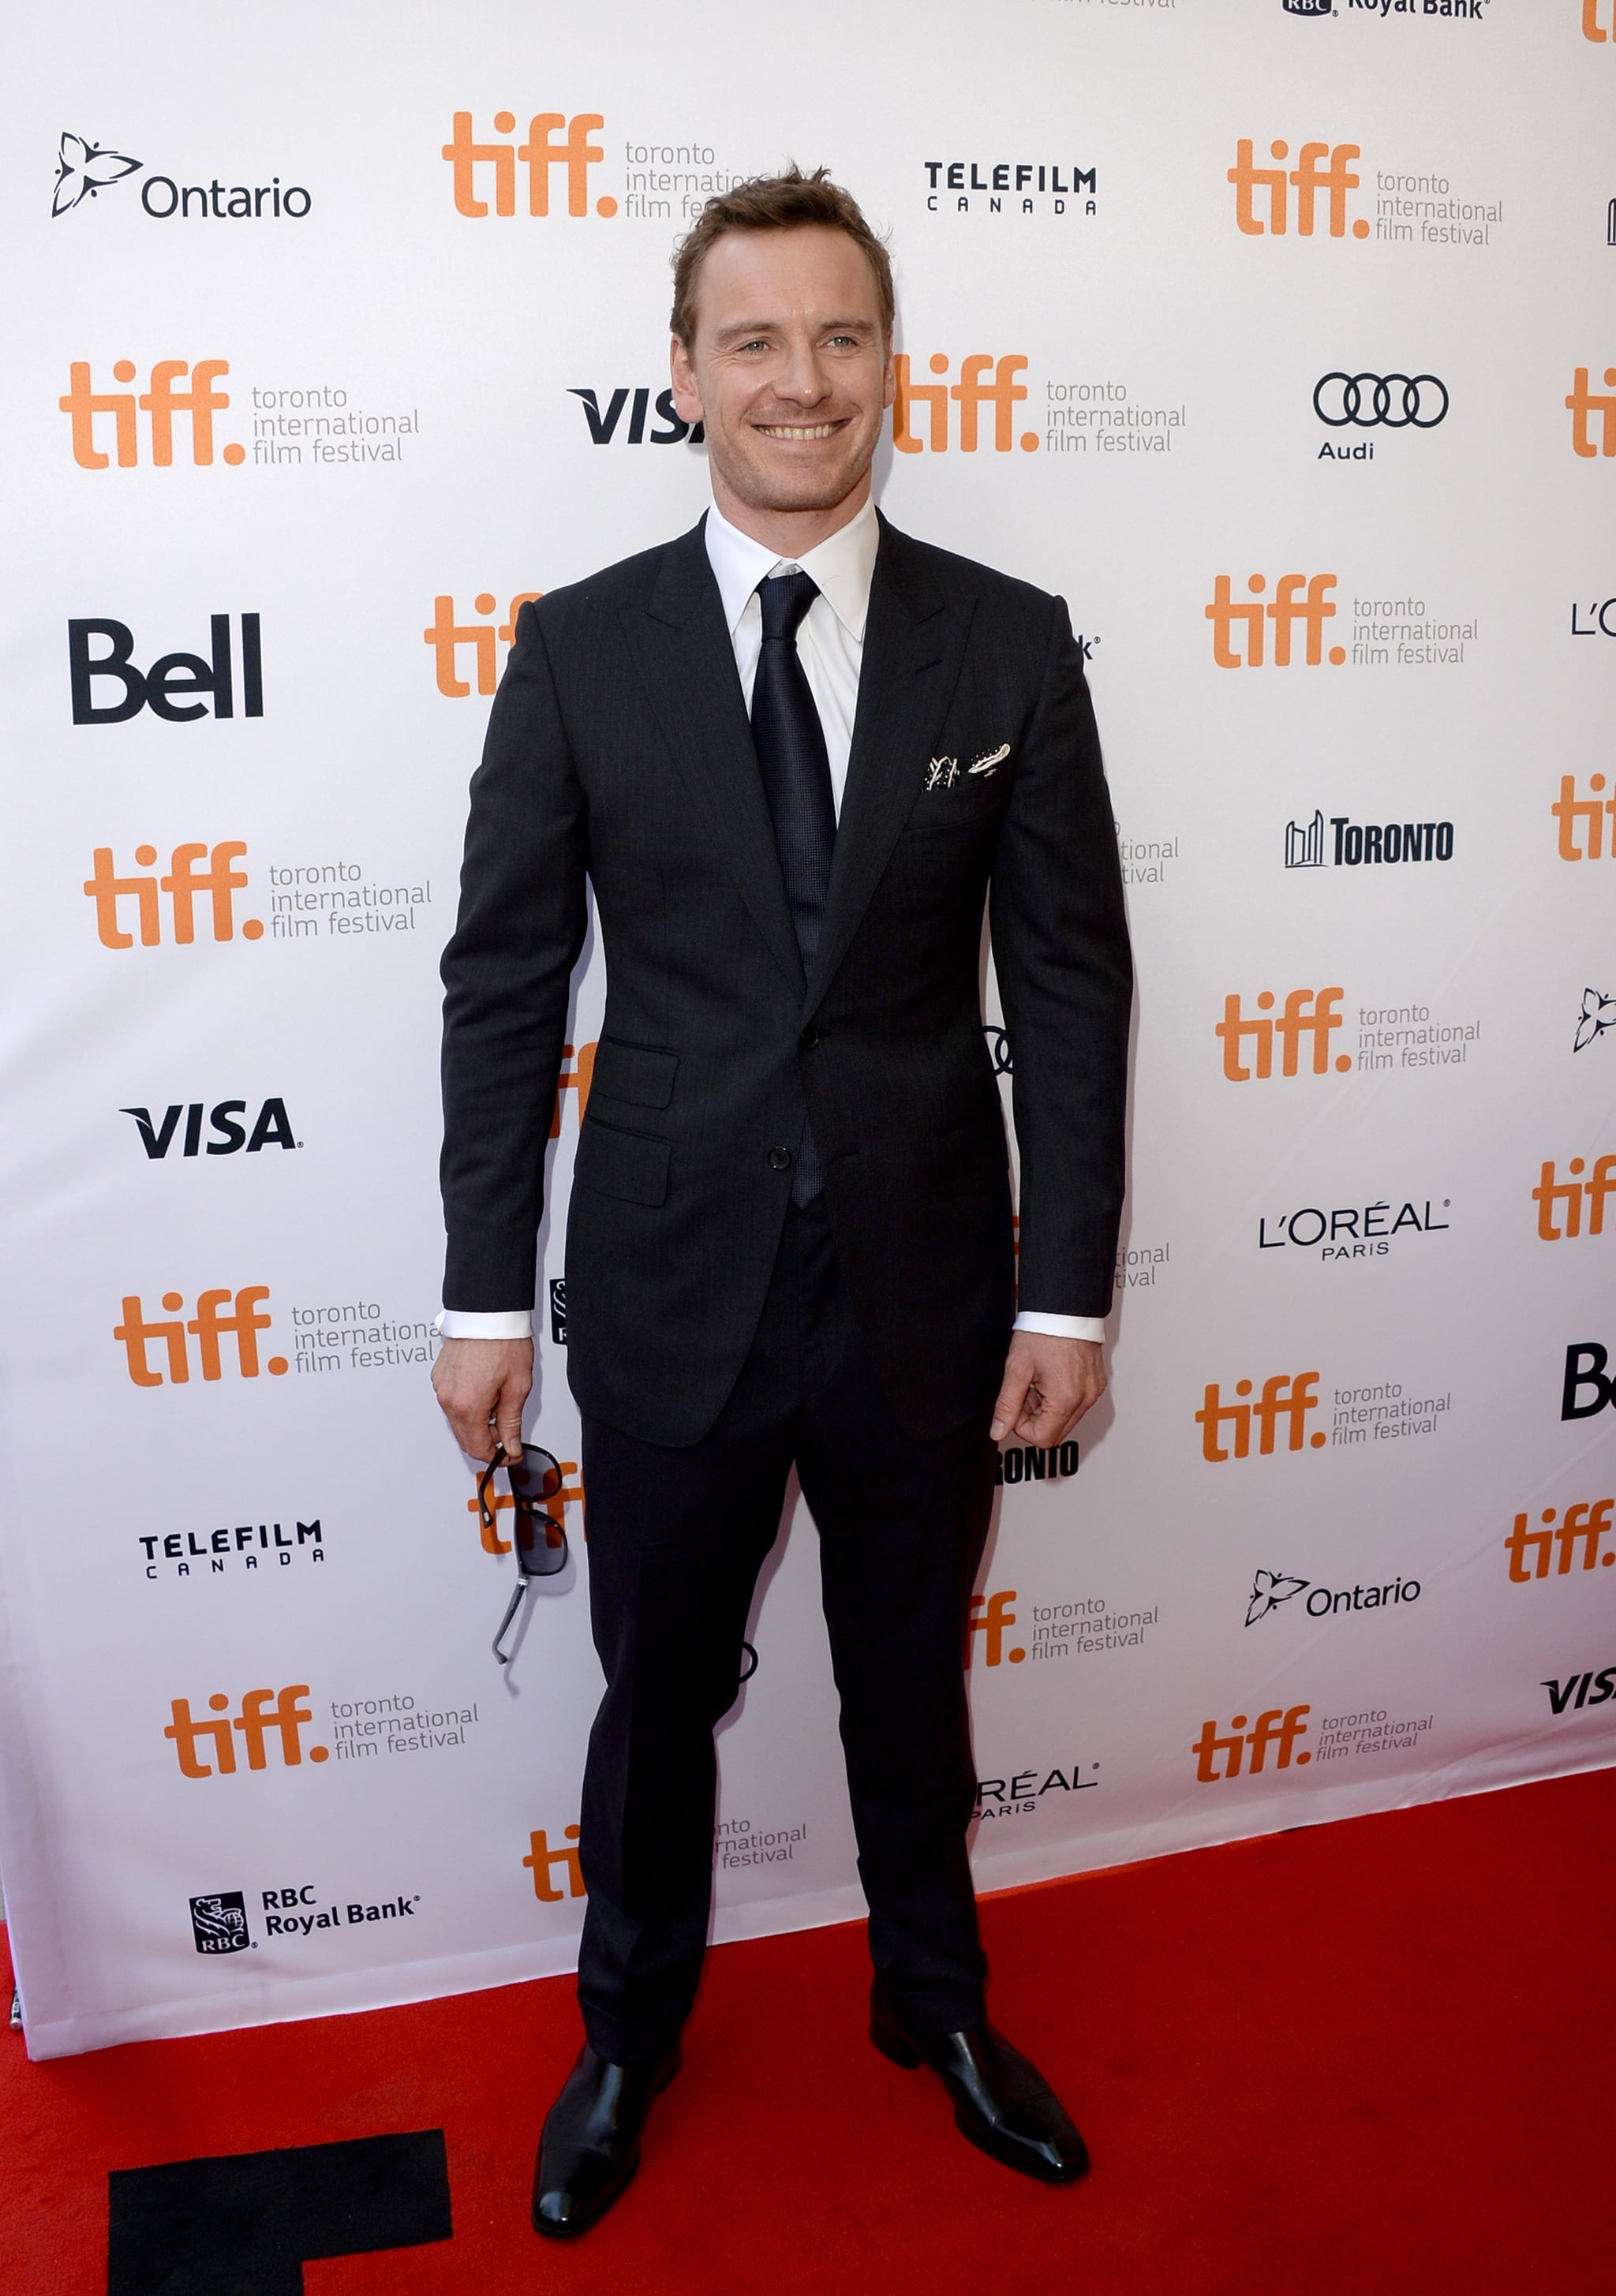 Michael Fassbender sported a suit and a smile at the 12 Years a Slave premiere.